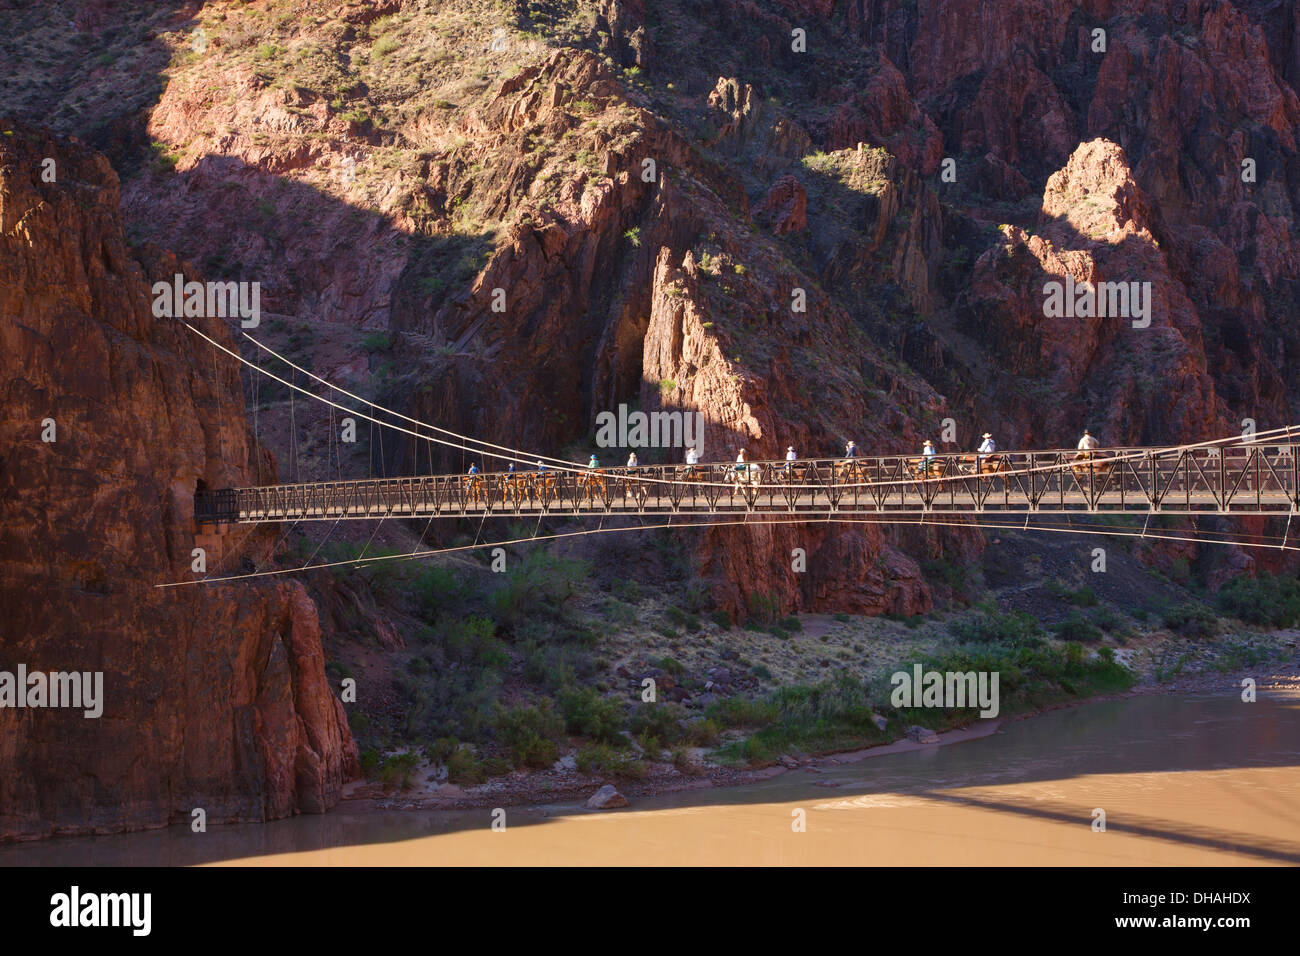 Pack mules cross the suspension bridge and tunnel on the South Kaibab Trail at the bottom of Grand Canyon National Park, Arizona - Stock Image